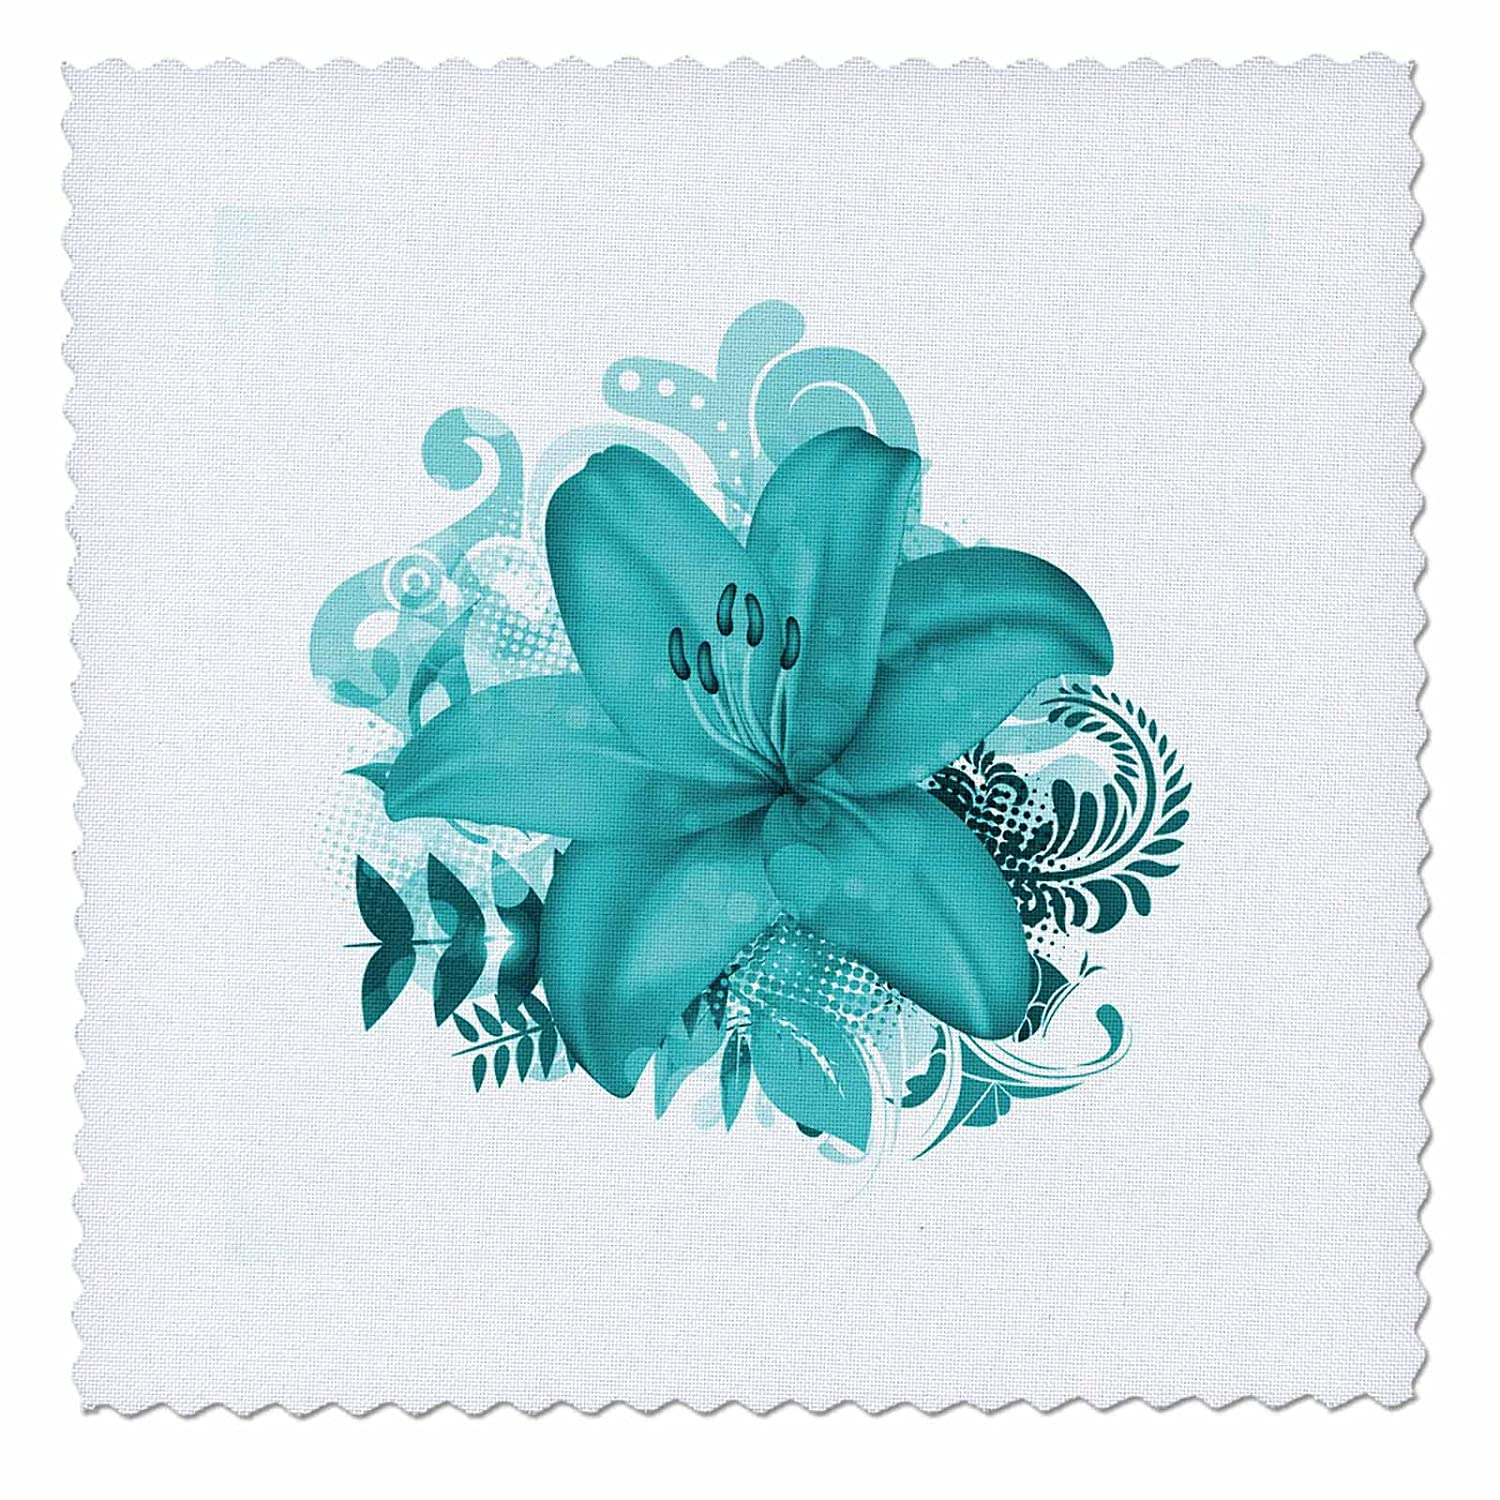 qs/_154553/_5 14 by 14-inch Quilt Square 3dRose Personalized letter M aqua blue quatrefoil pattern Teal turquoise mint monogrammed personal initial